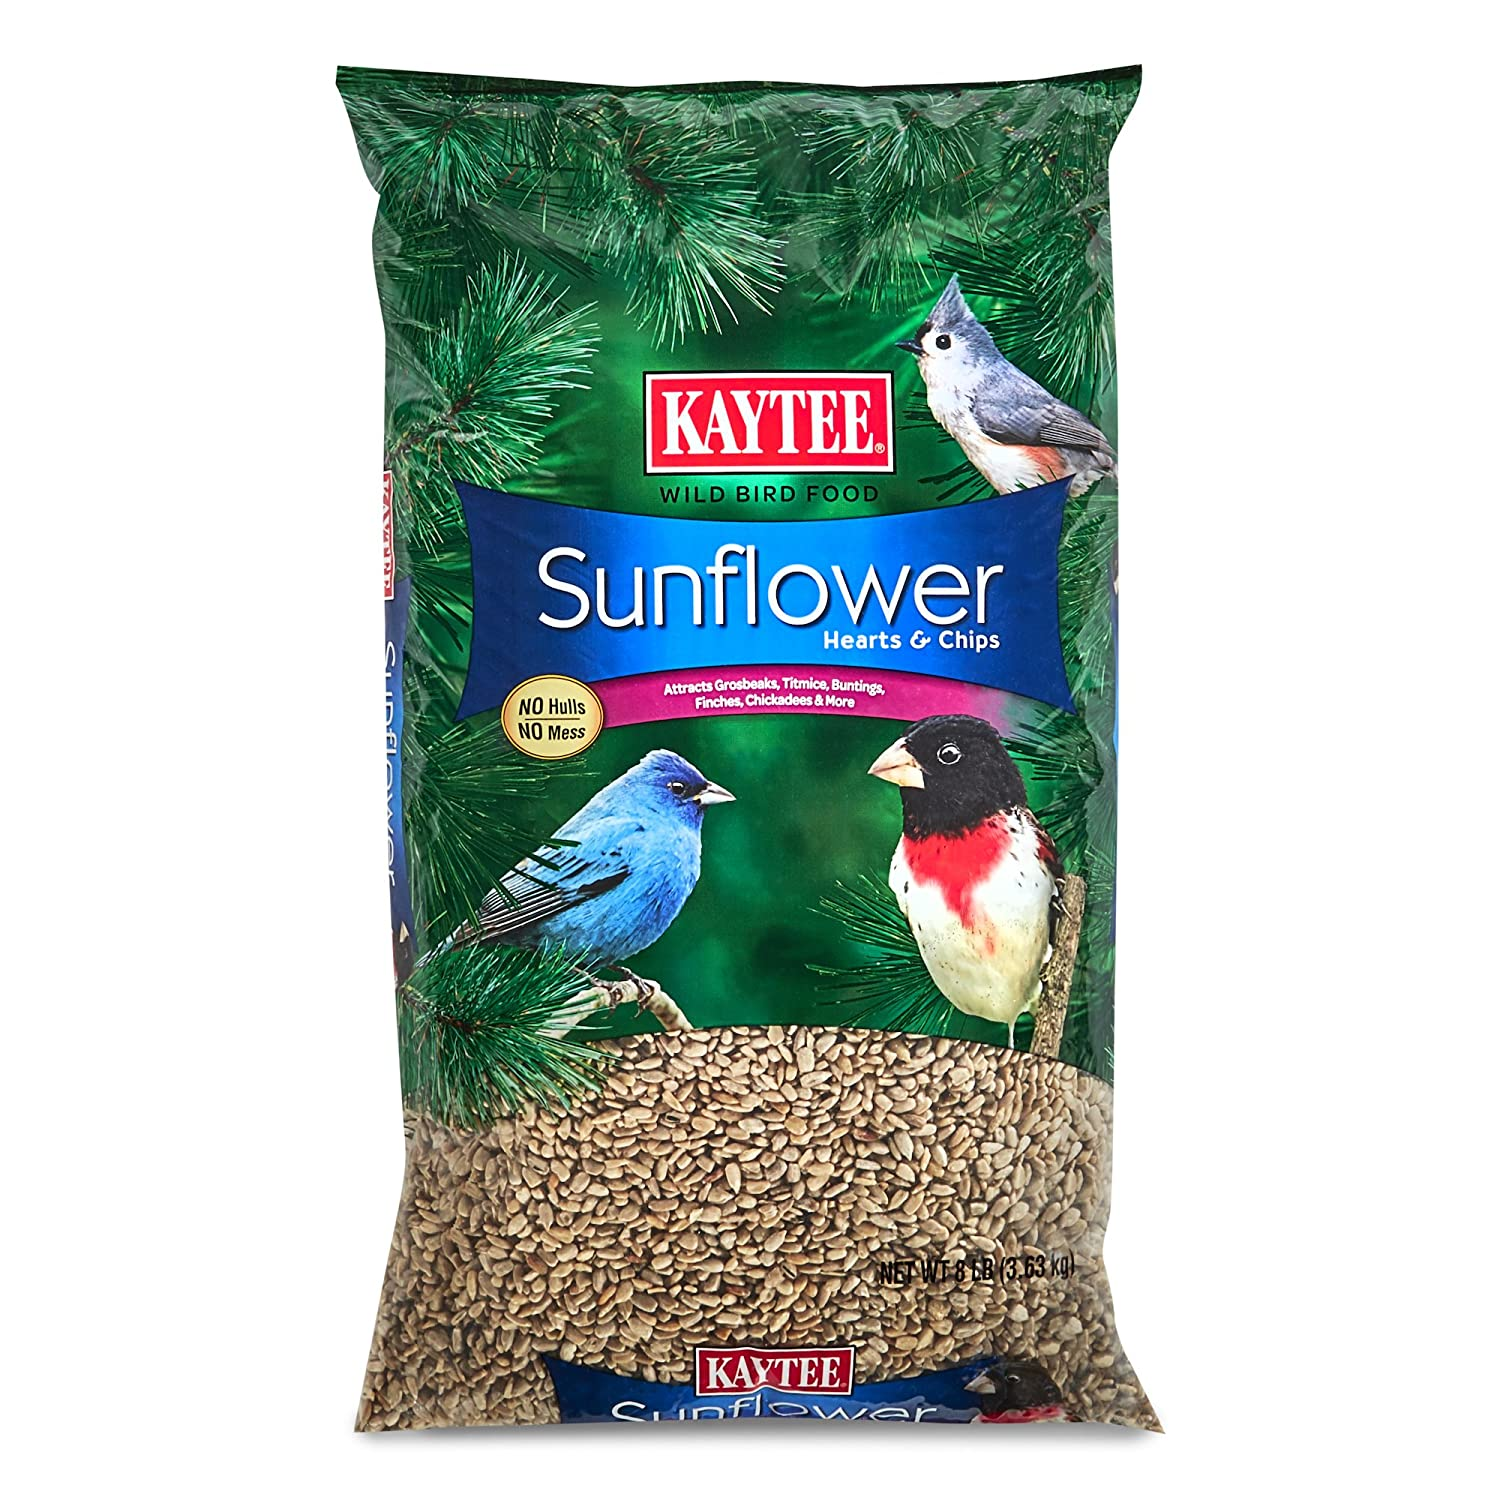 Kaytee Sunflower Hearts and Chips Bird Seed, 8-Pound